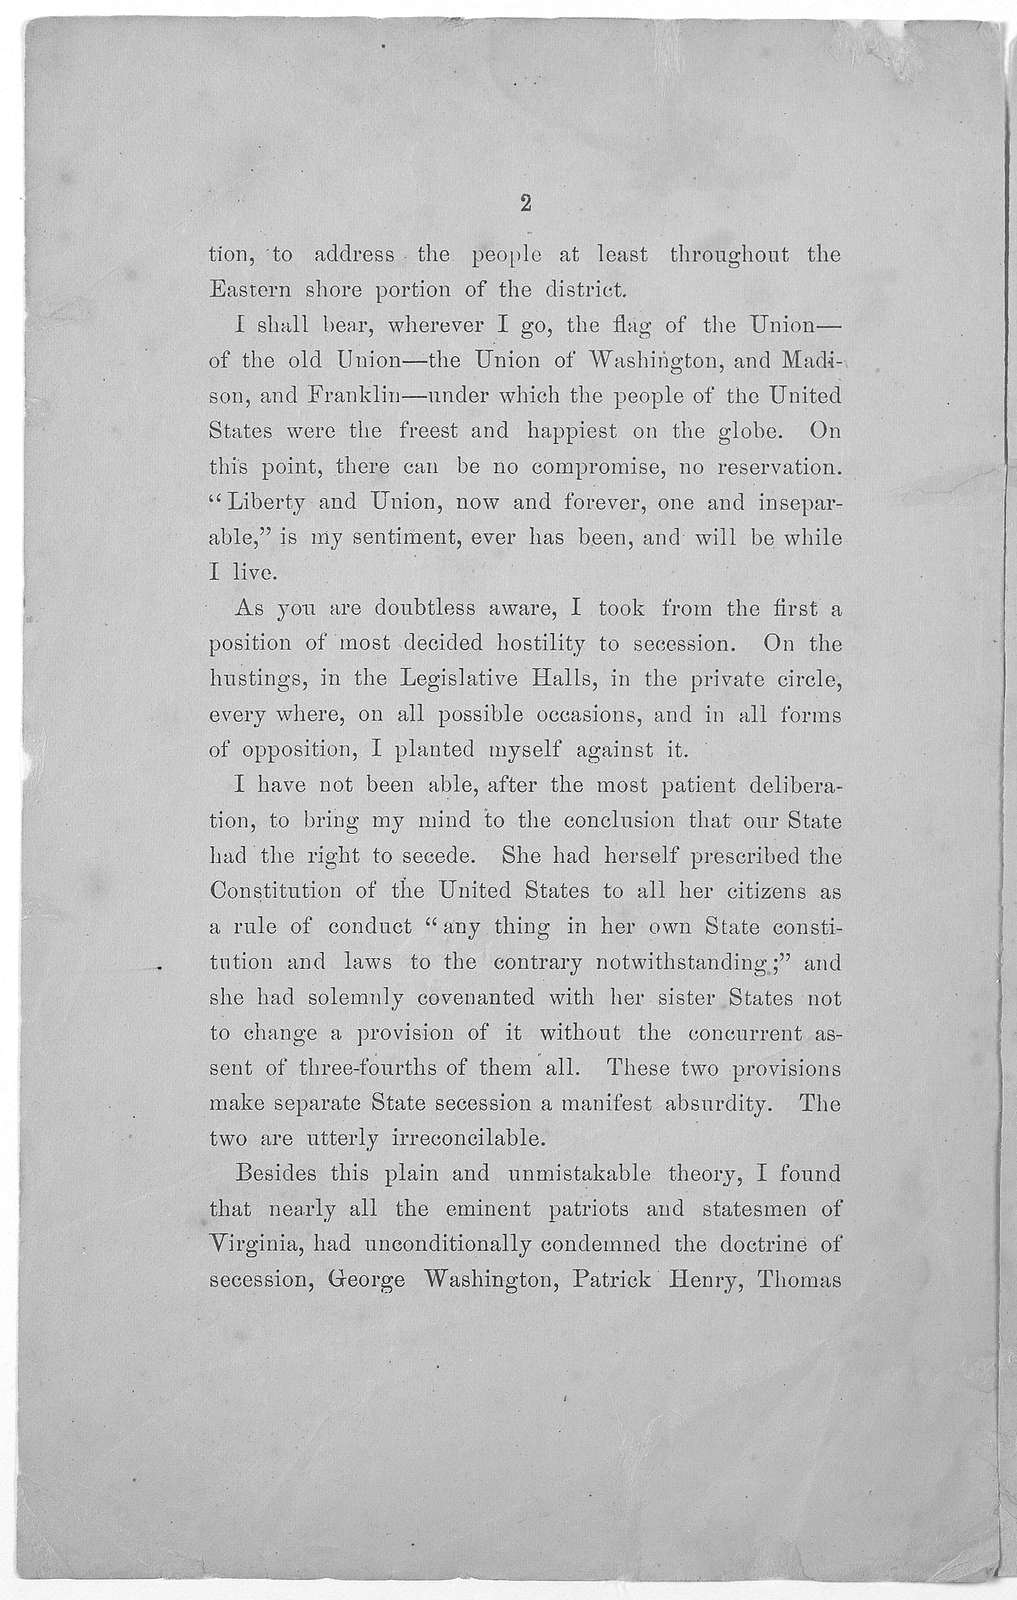 Extract from circular address of Hon. Joseph Segar to the voters of the First Congressional district of Virginia, February 1862. [n. p. 1862].